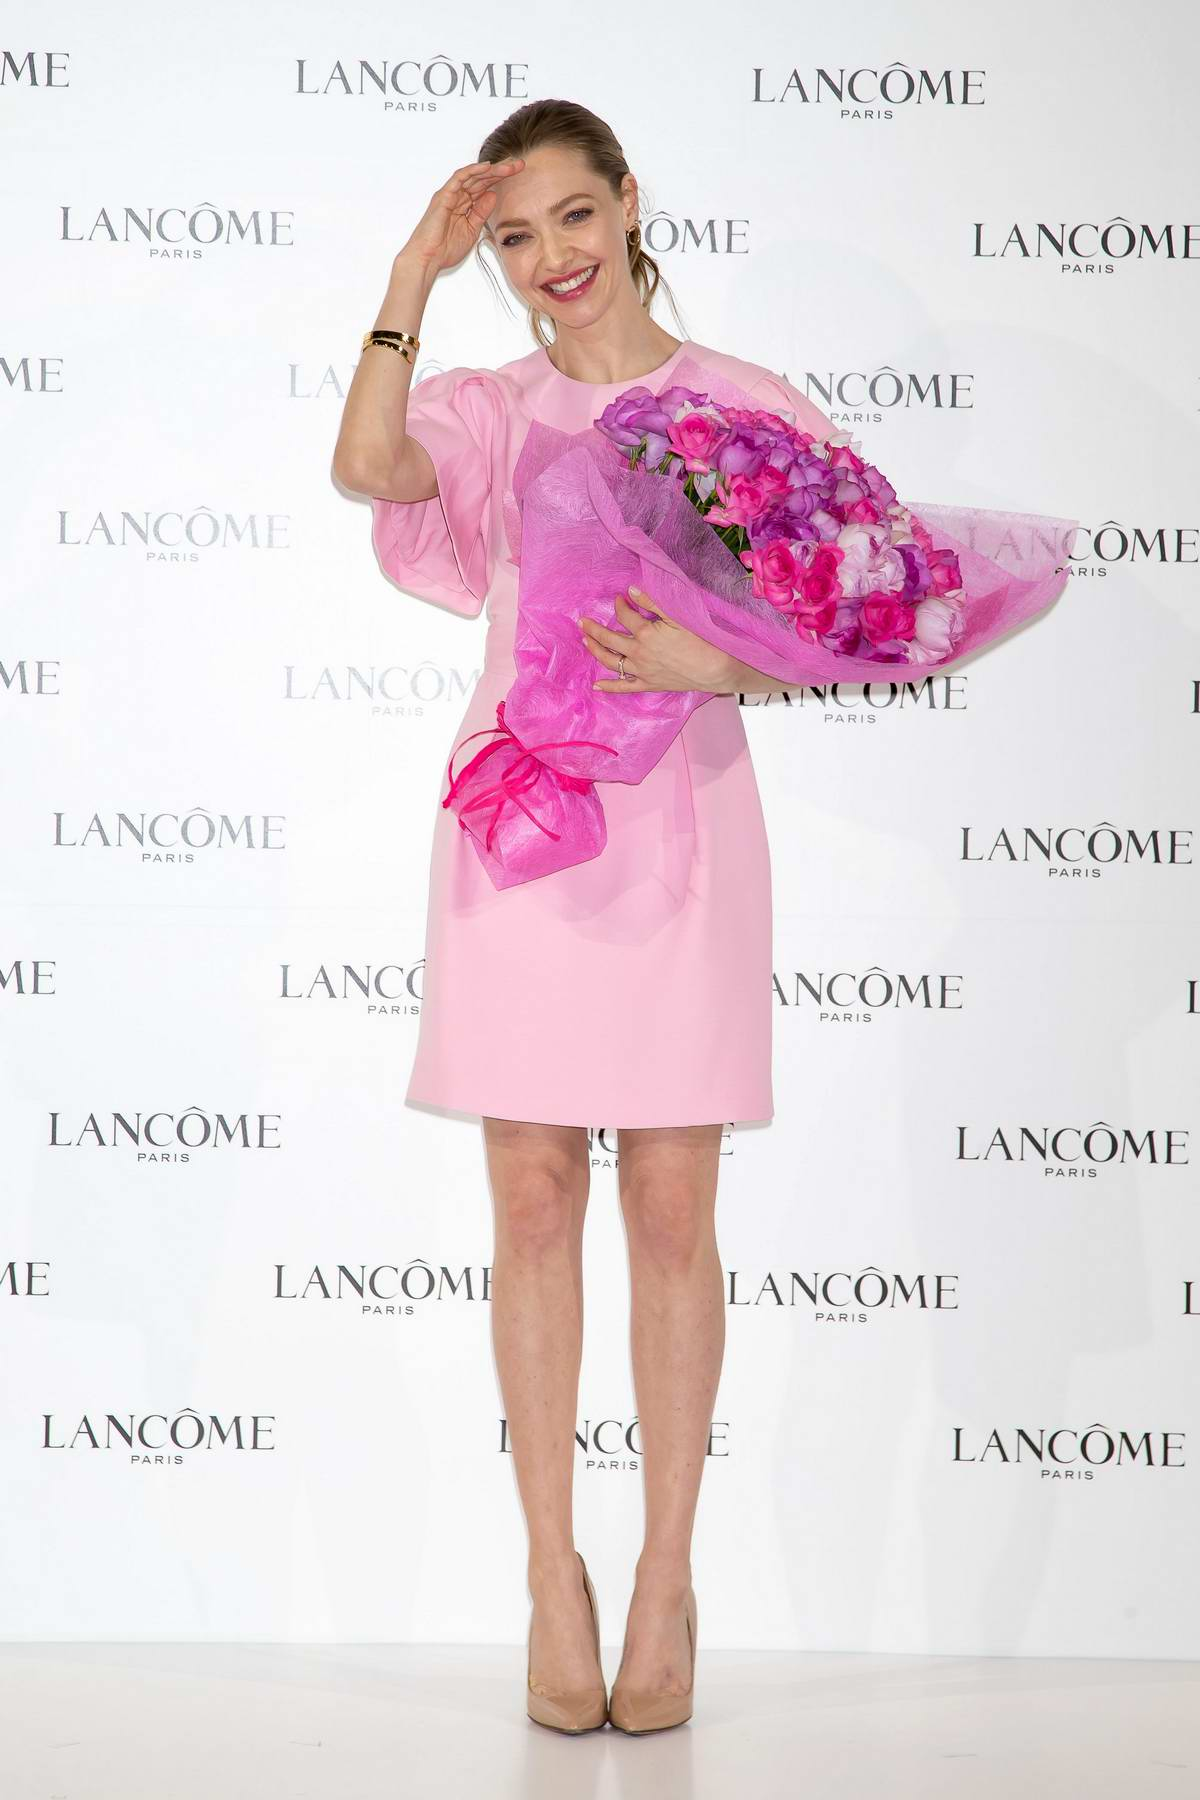 Amanda Seyfried attends 'Lancome' press conference in Tokyo, Japan